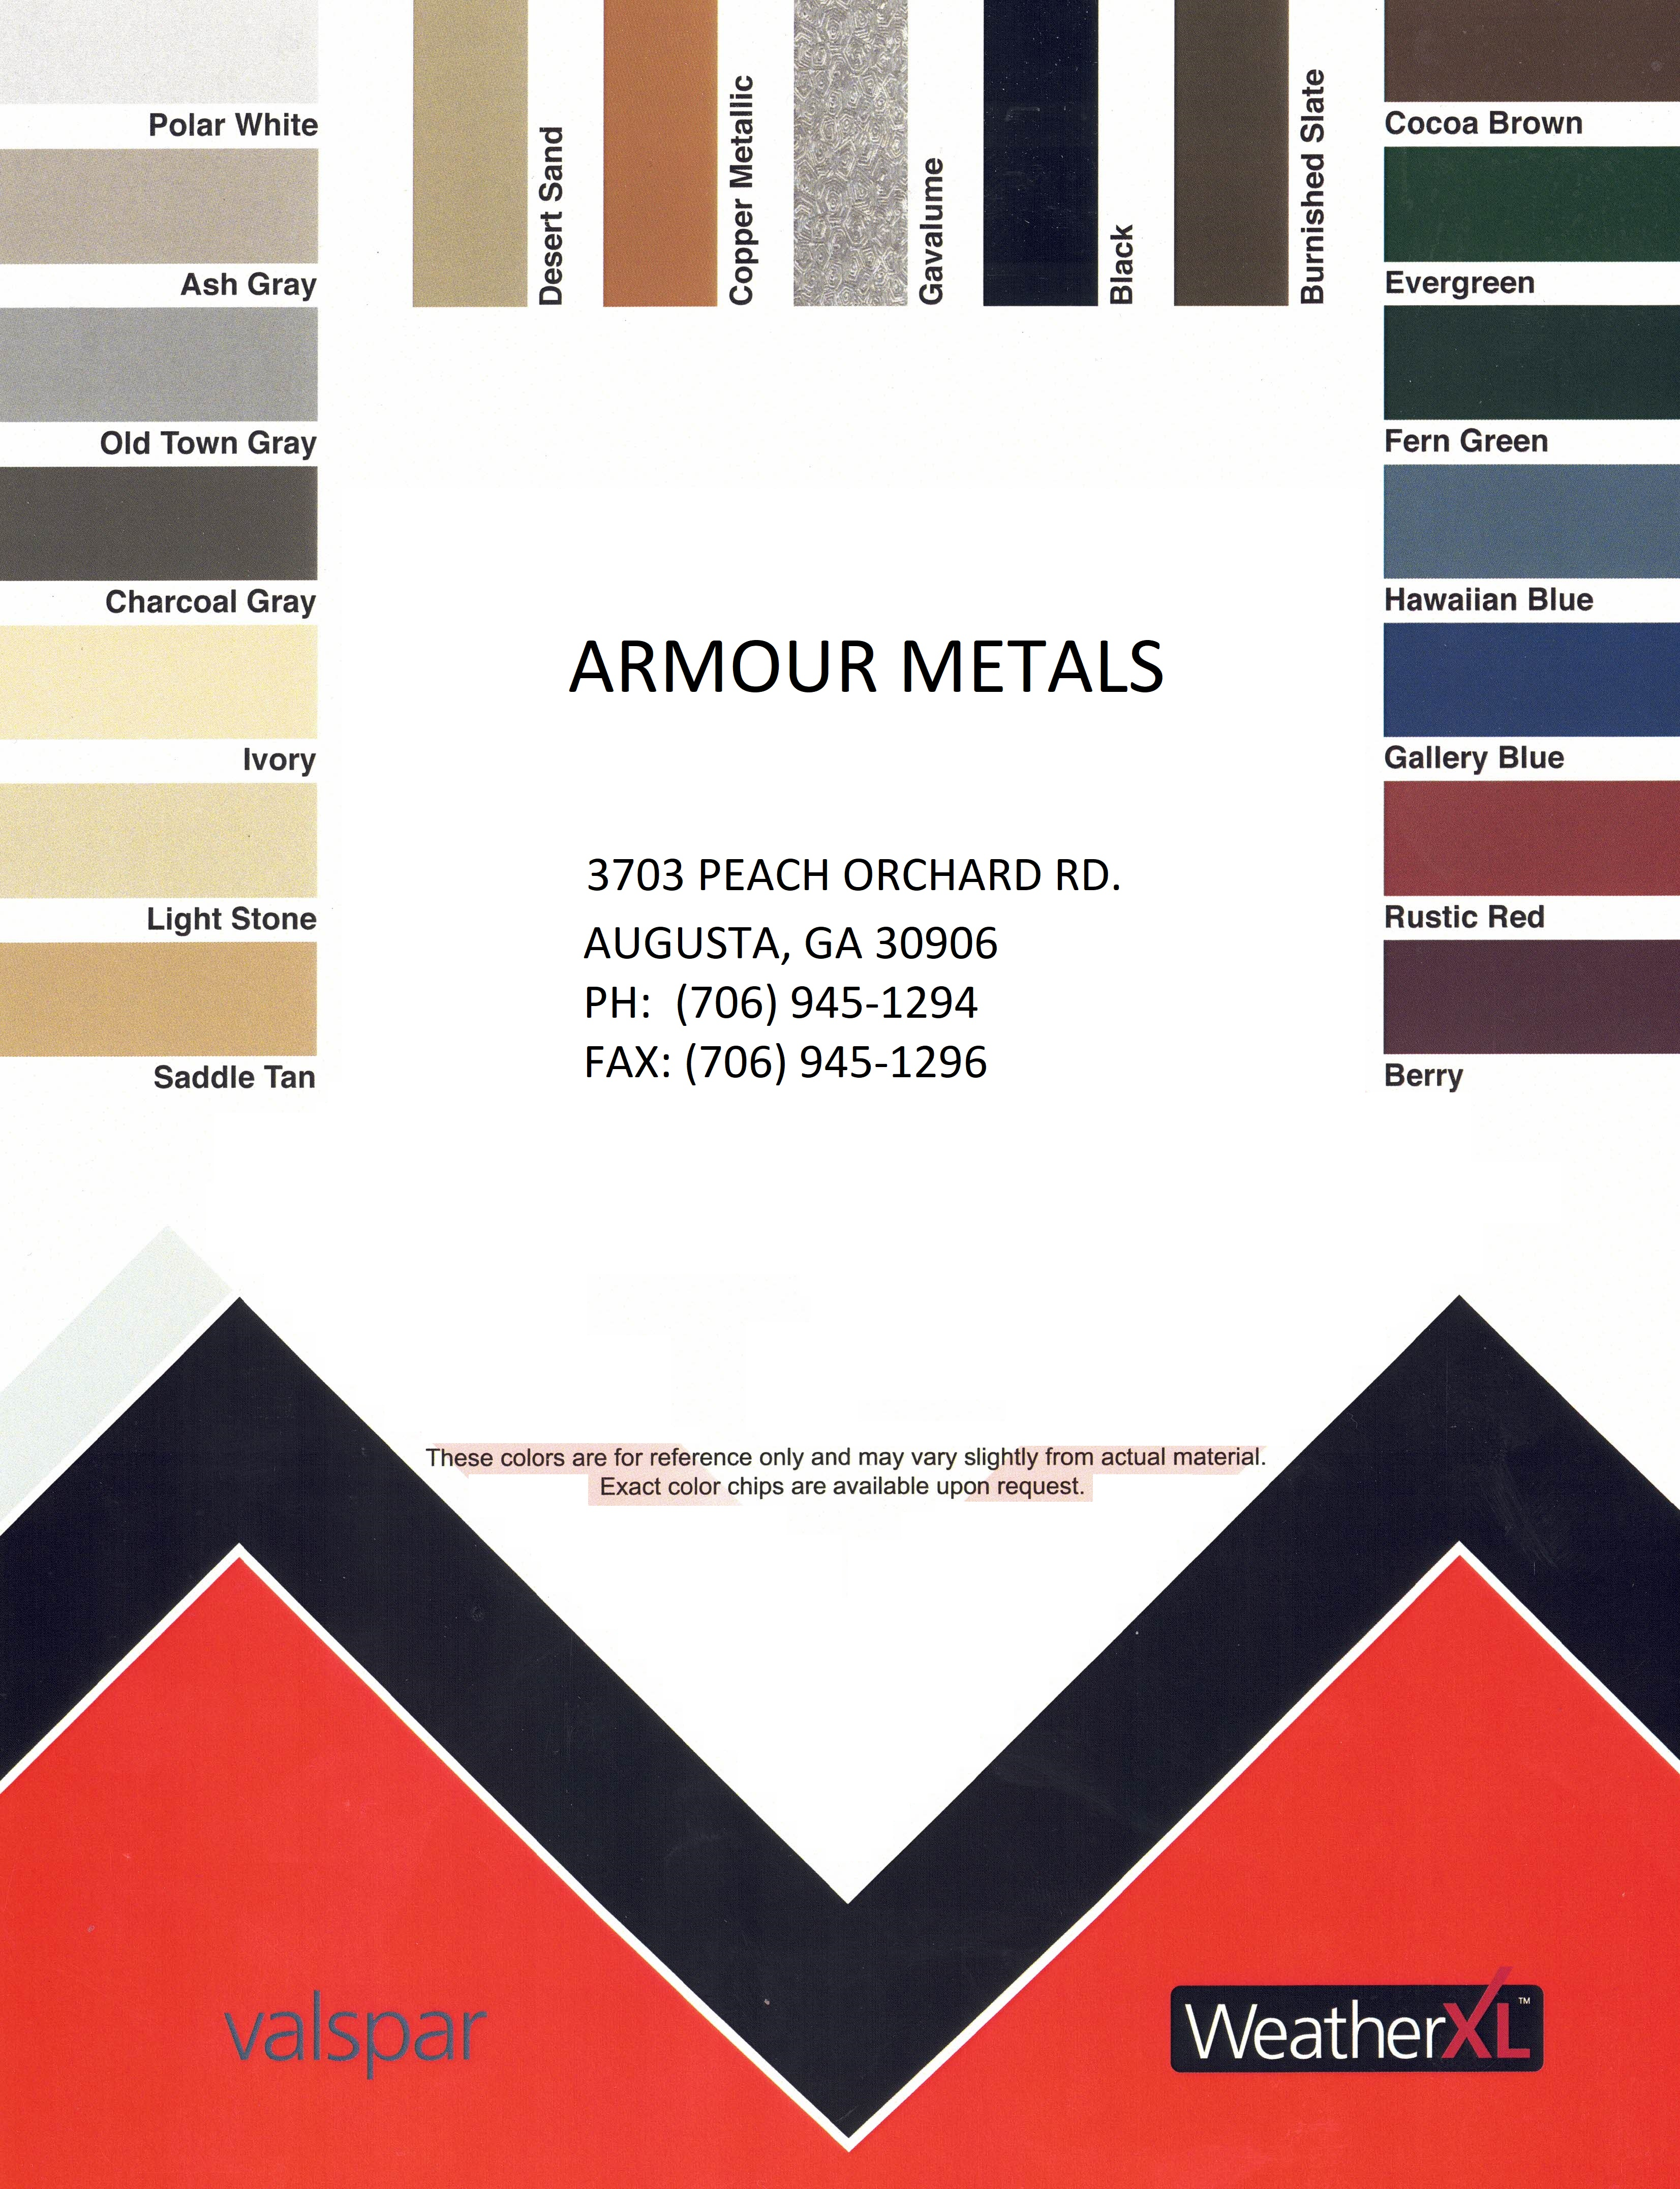 Armour Metals Metal Roofing And Pole Barns Color Chart